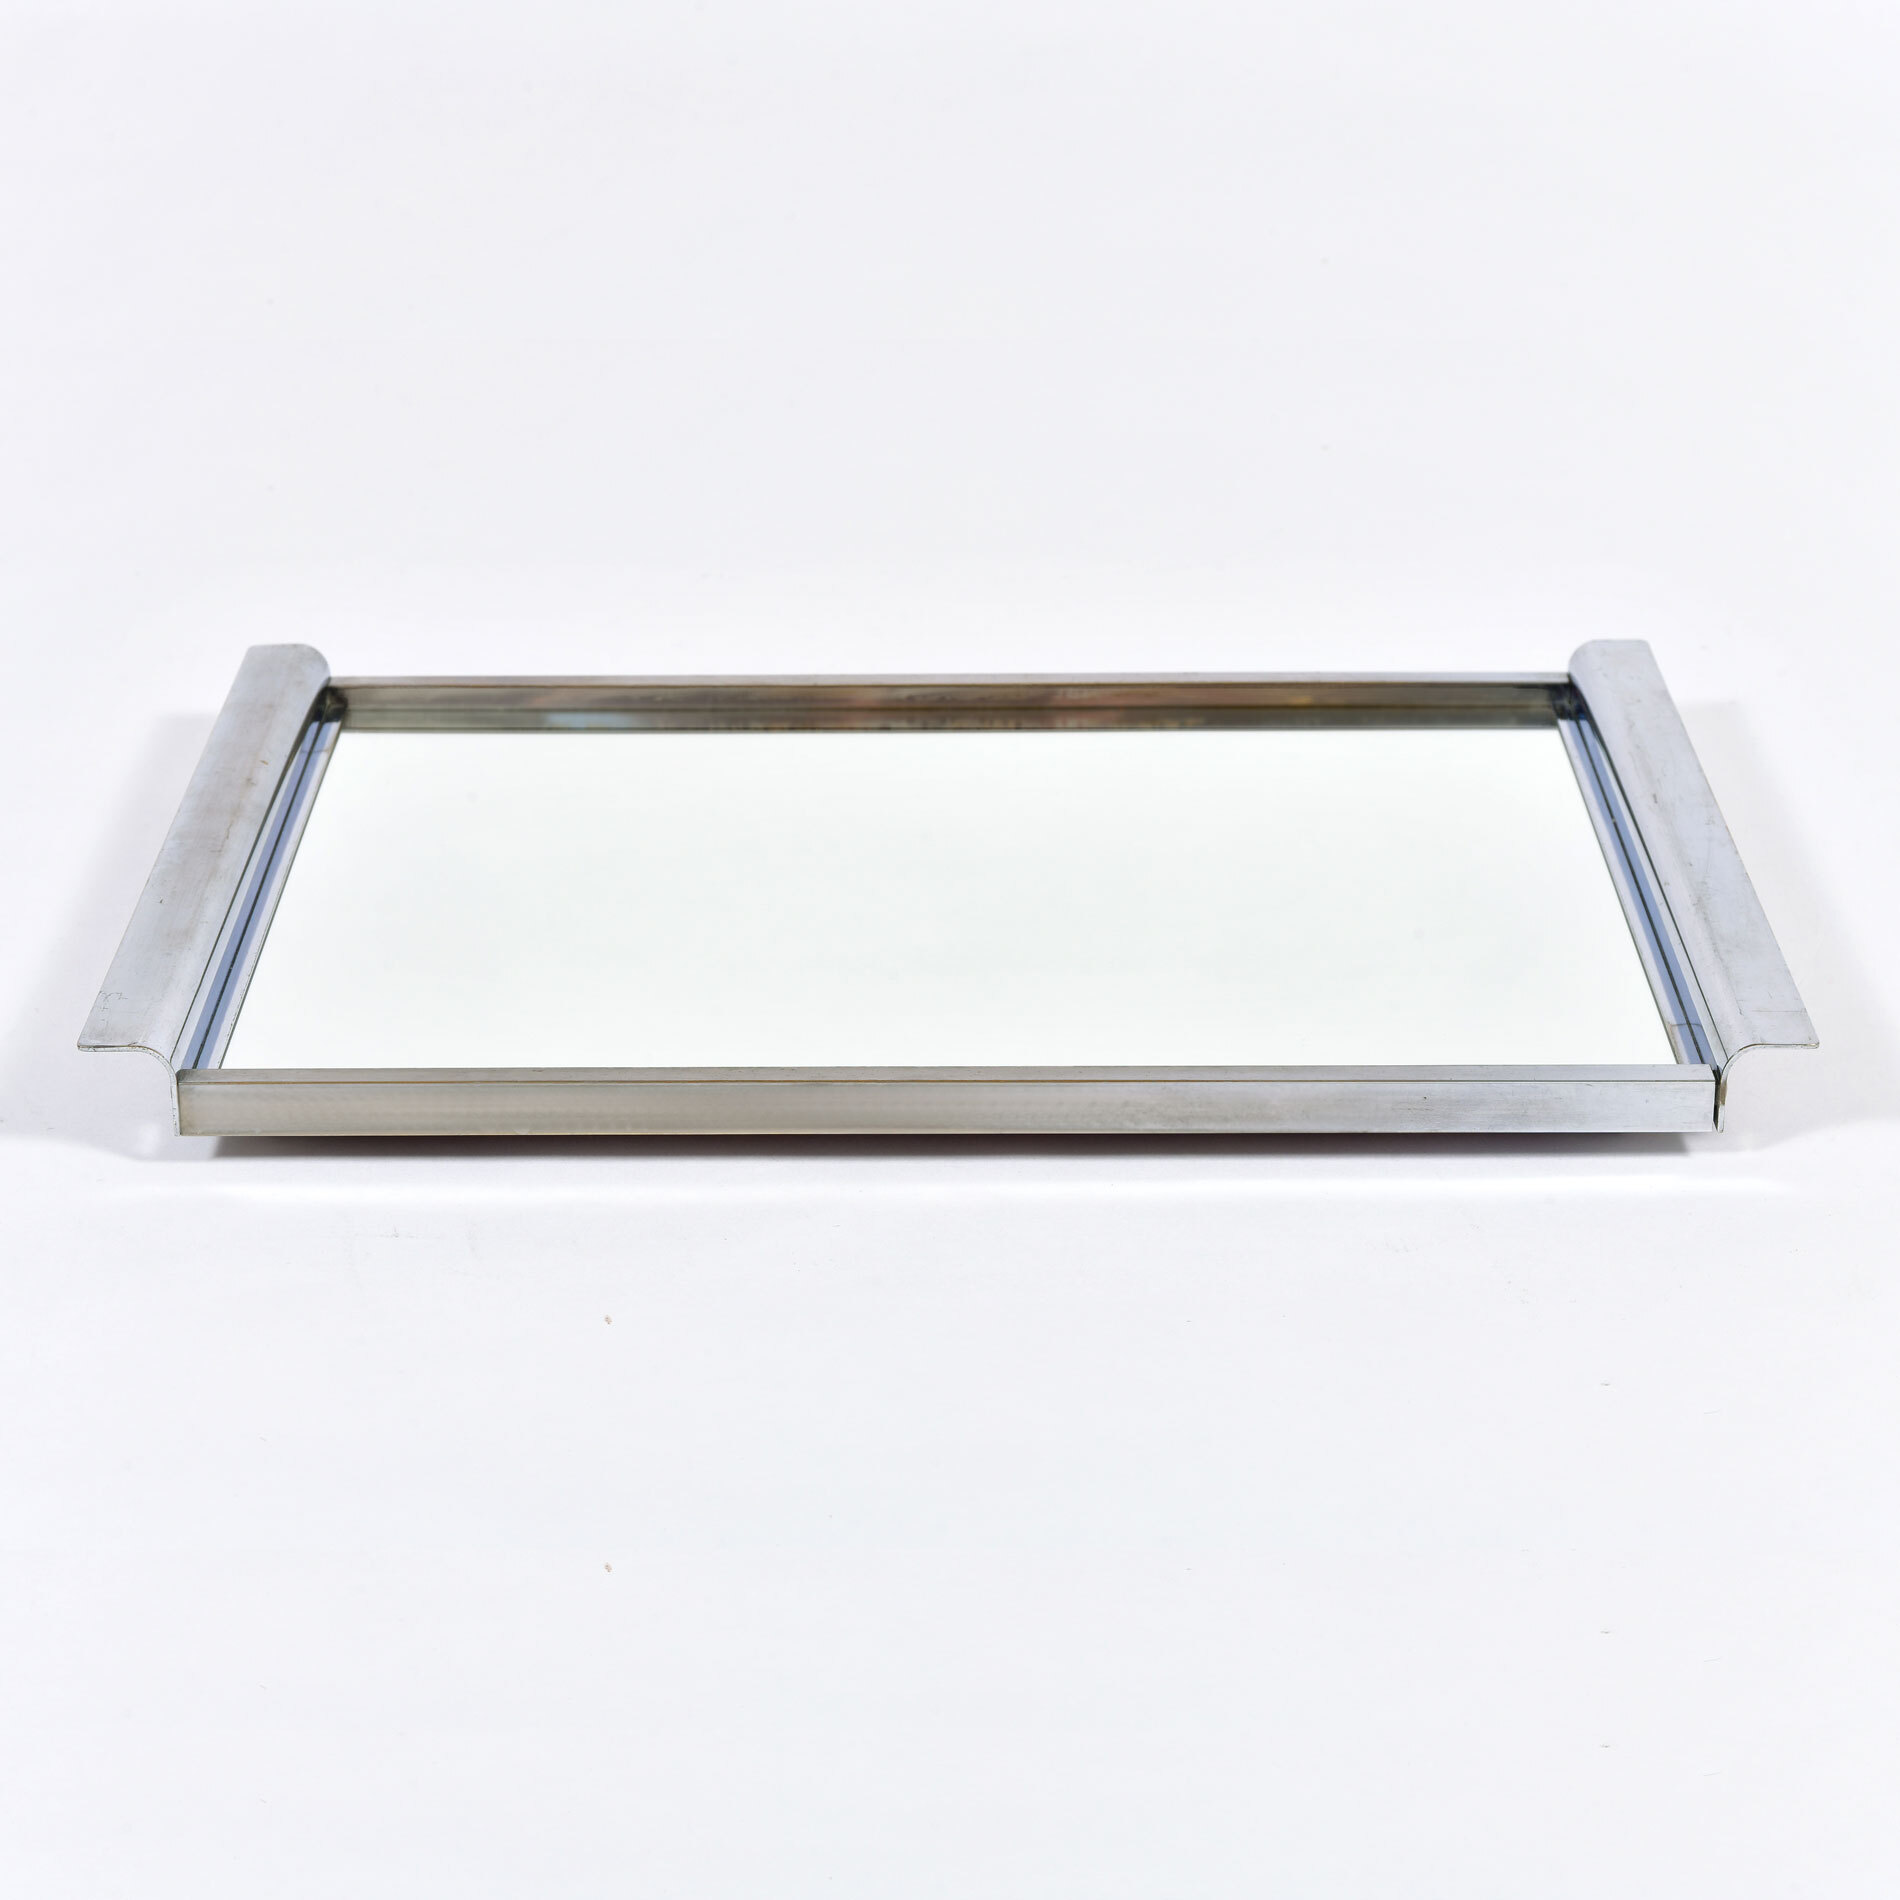 The image for Medium Chrome Mirrored Tray 01